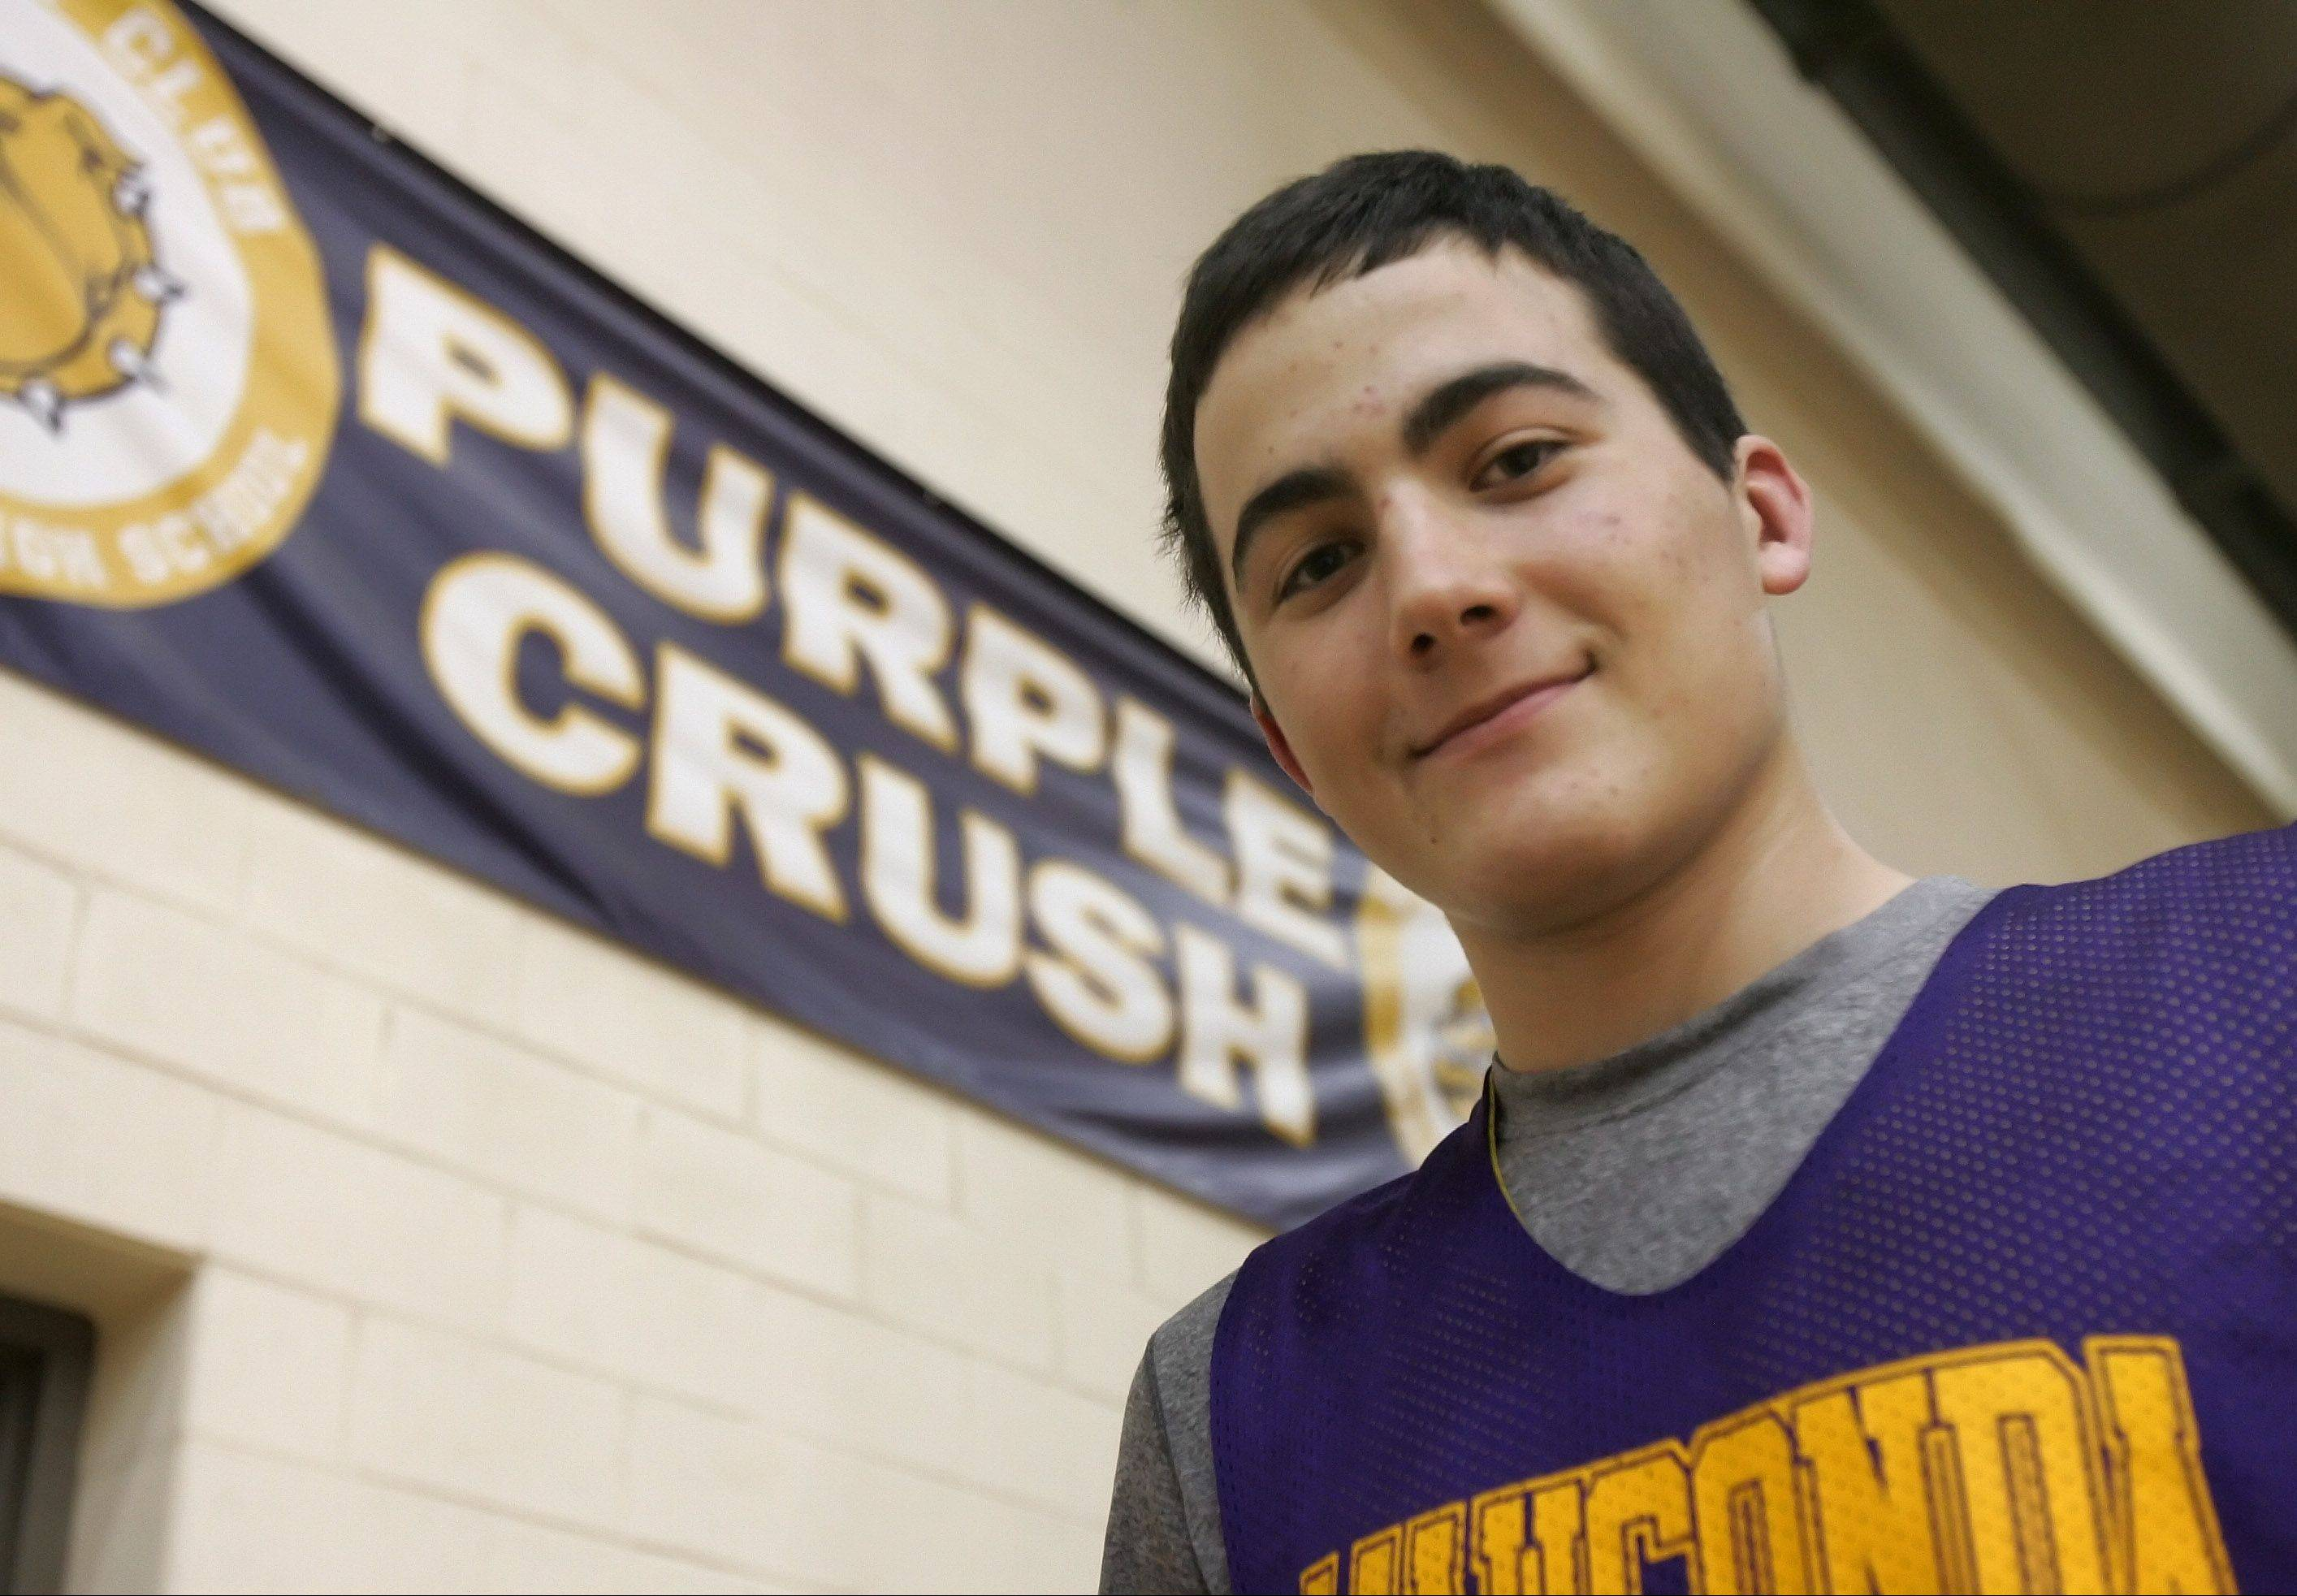 Wauconda's Austin Swenson will calculate his college decision mainly based on the quality of the school's engineering program.